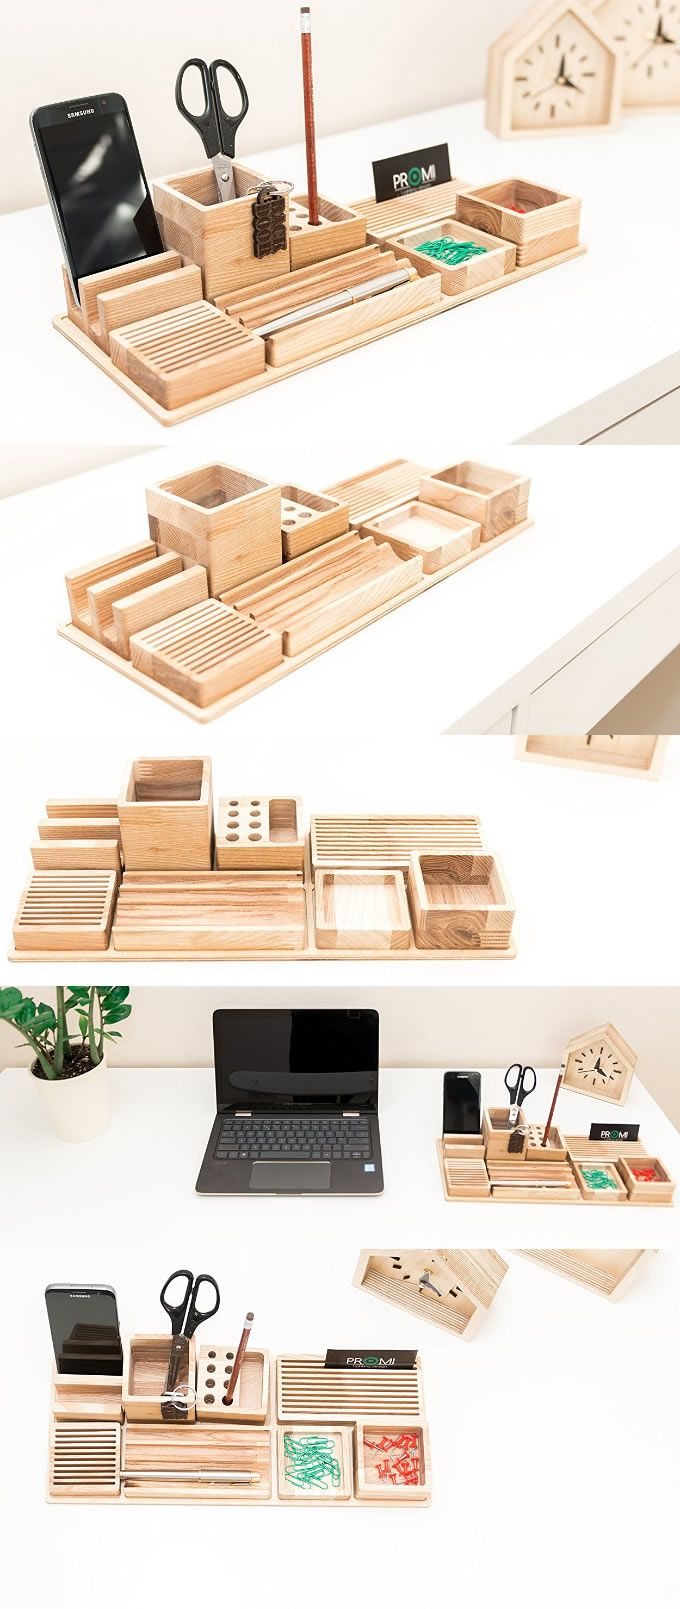 Bamboo Wooden Office Desk Organizer Pen Pencil Holder Stand Smart Phone Mobile Phone Iphone Dock Wooden Office Desk Desk Organization Desk Organization Office